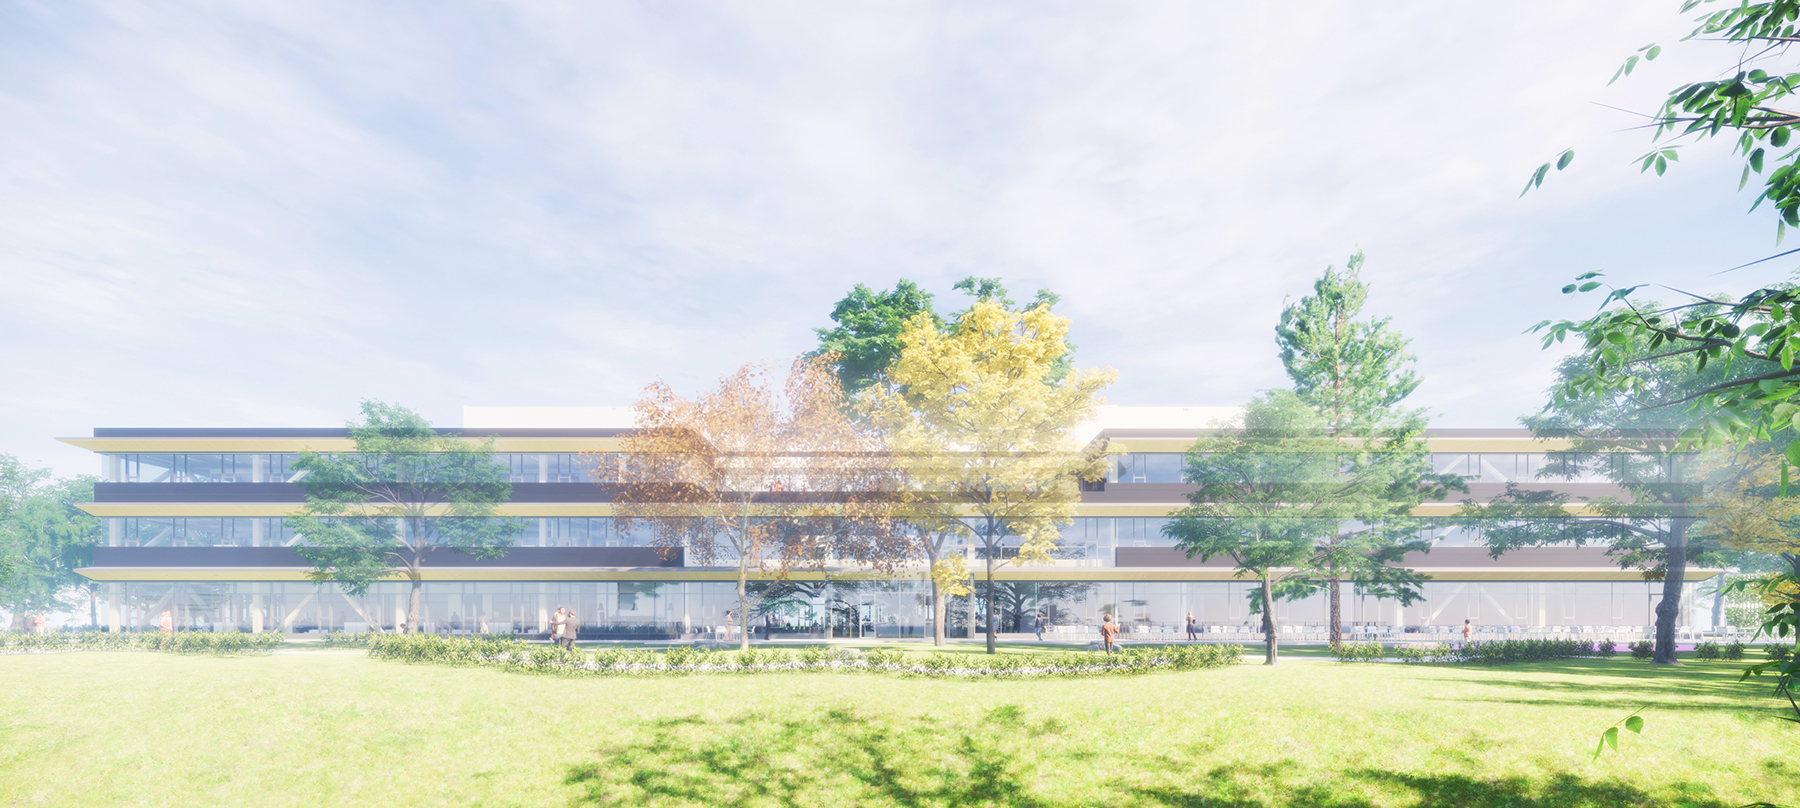 https://mtarch.com/projects/ontario-secondary-school-teachers-federation-headquarters-and-multi-tenant-commercial-building/